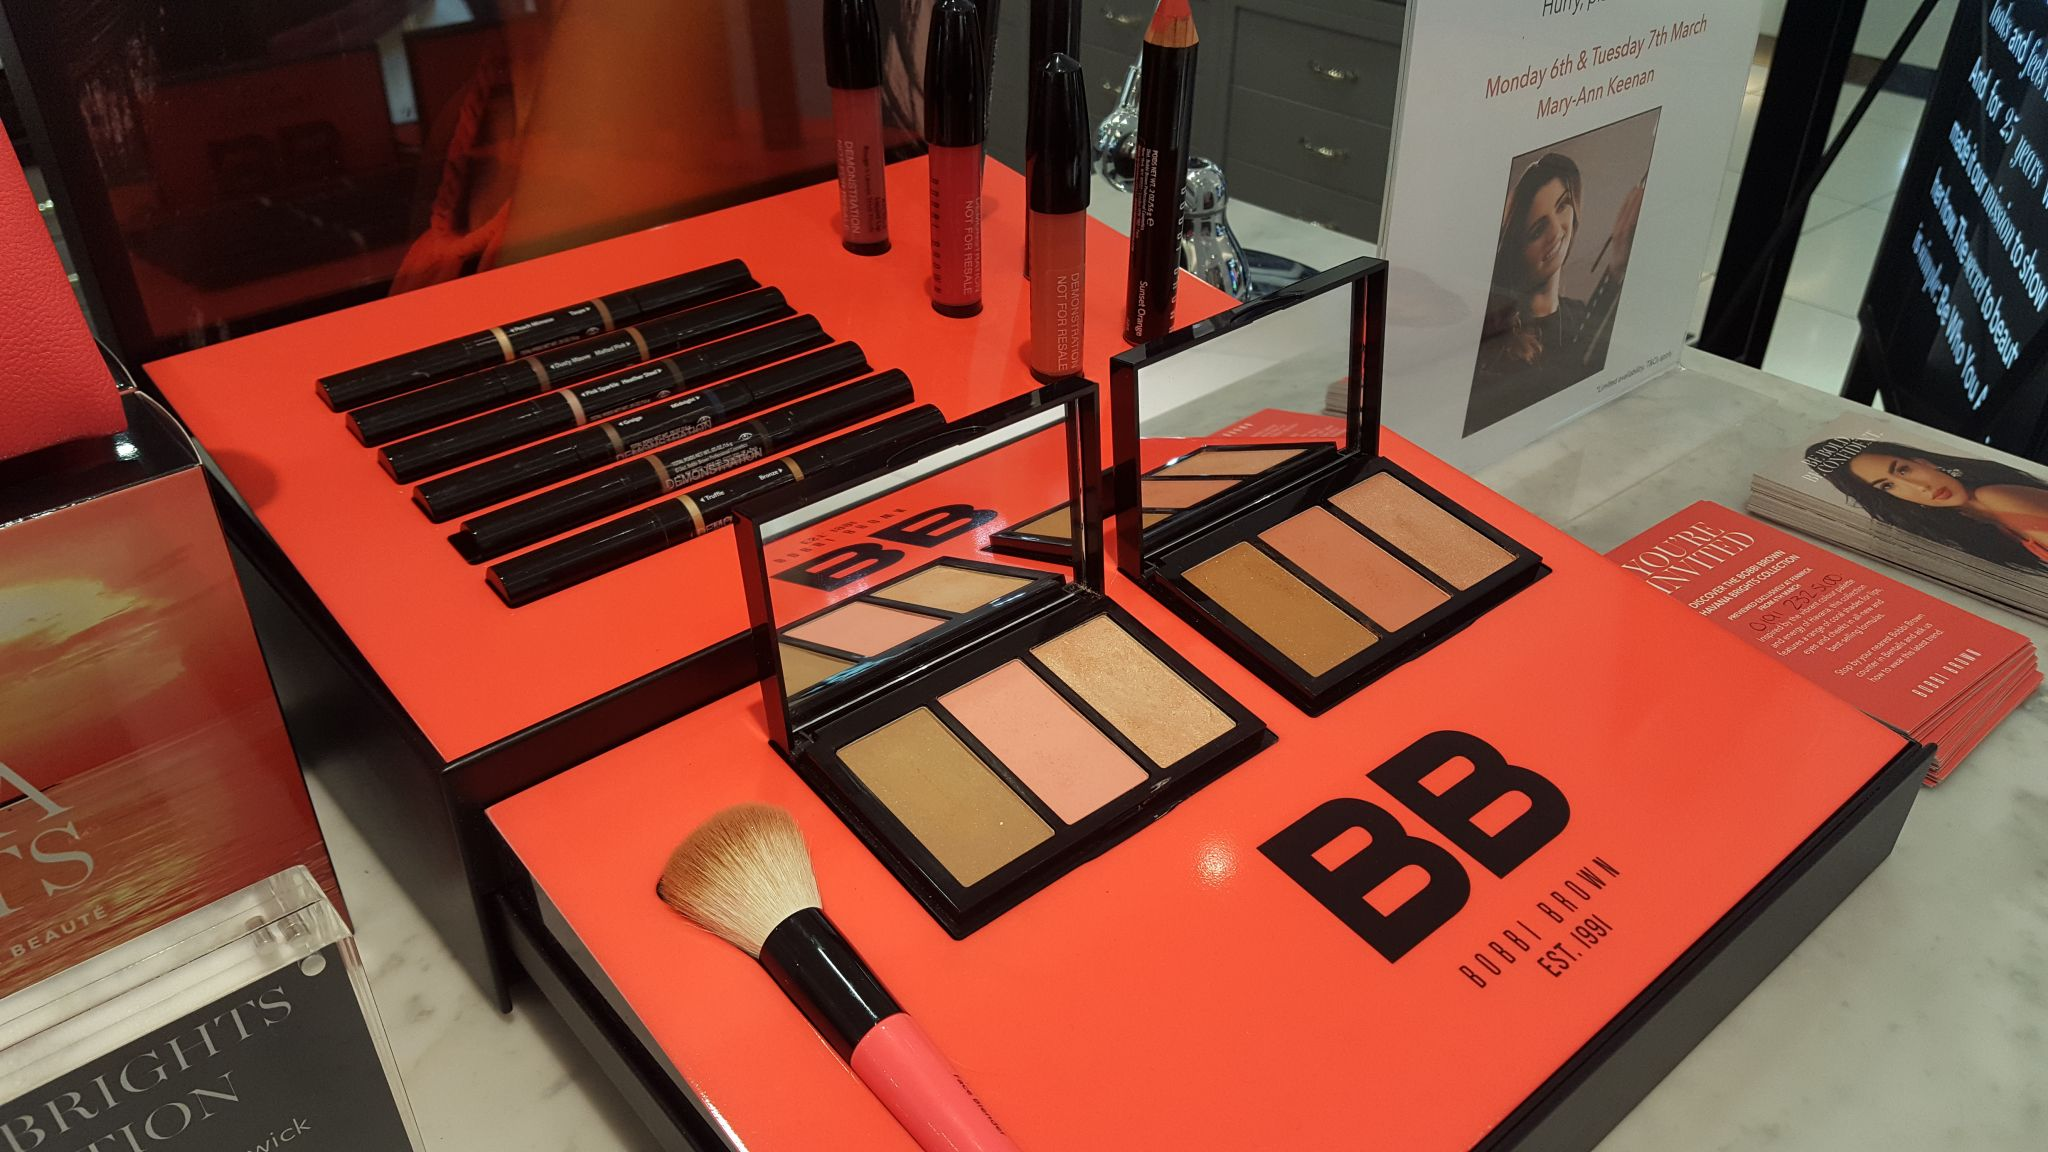 20170307 130313 1440x810 - Introducing Havana Brights make up collection by Bobbi Brown